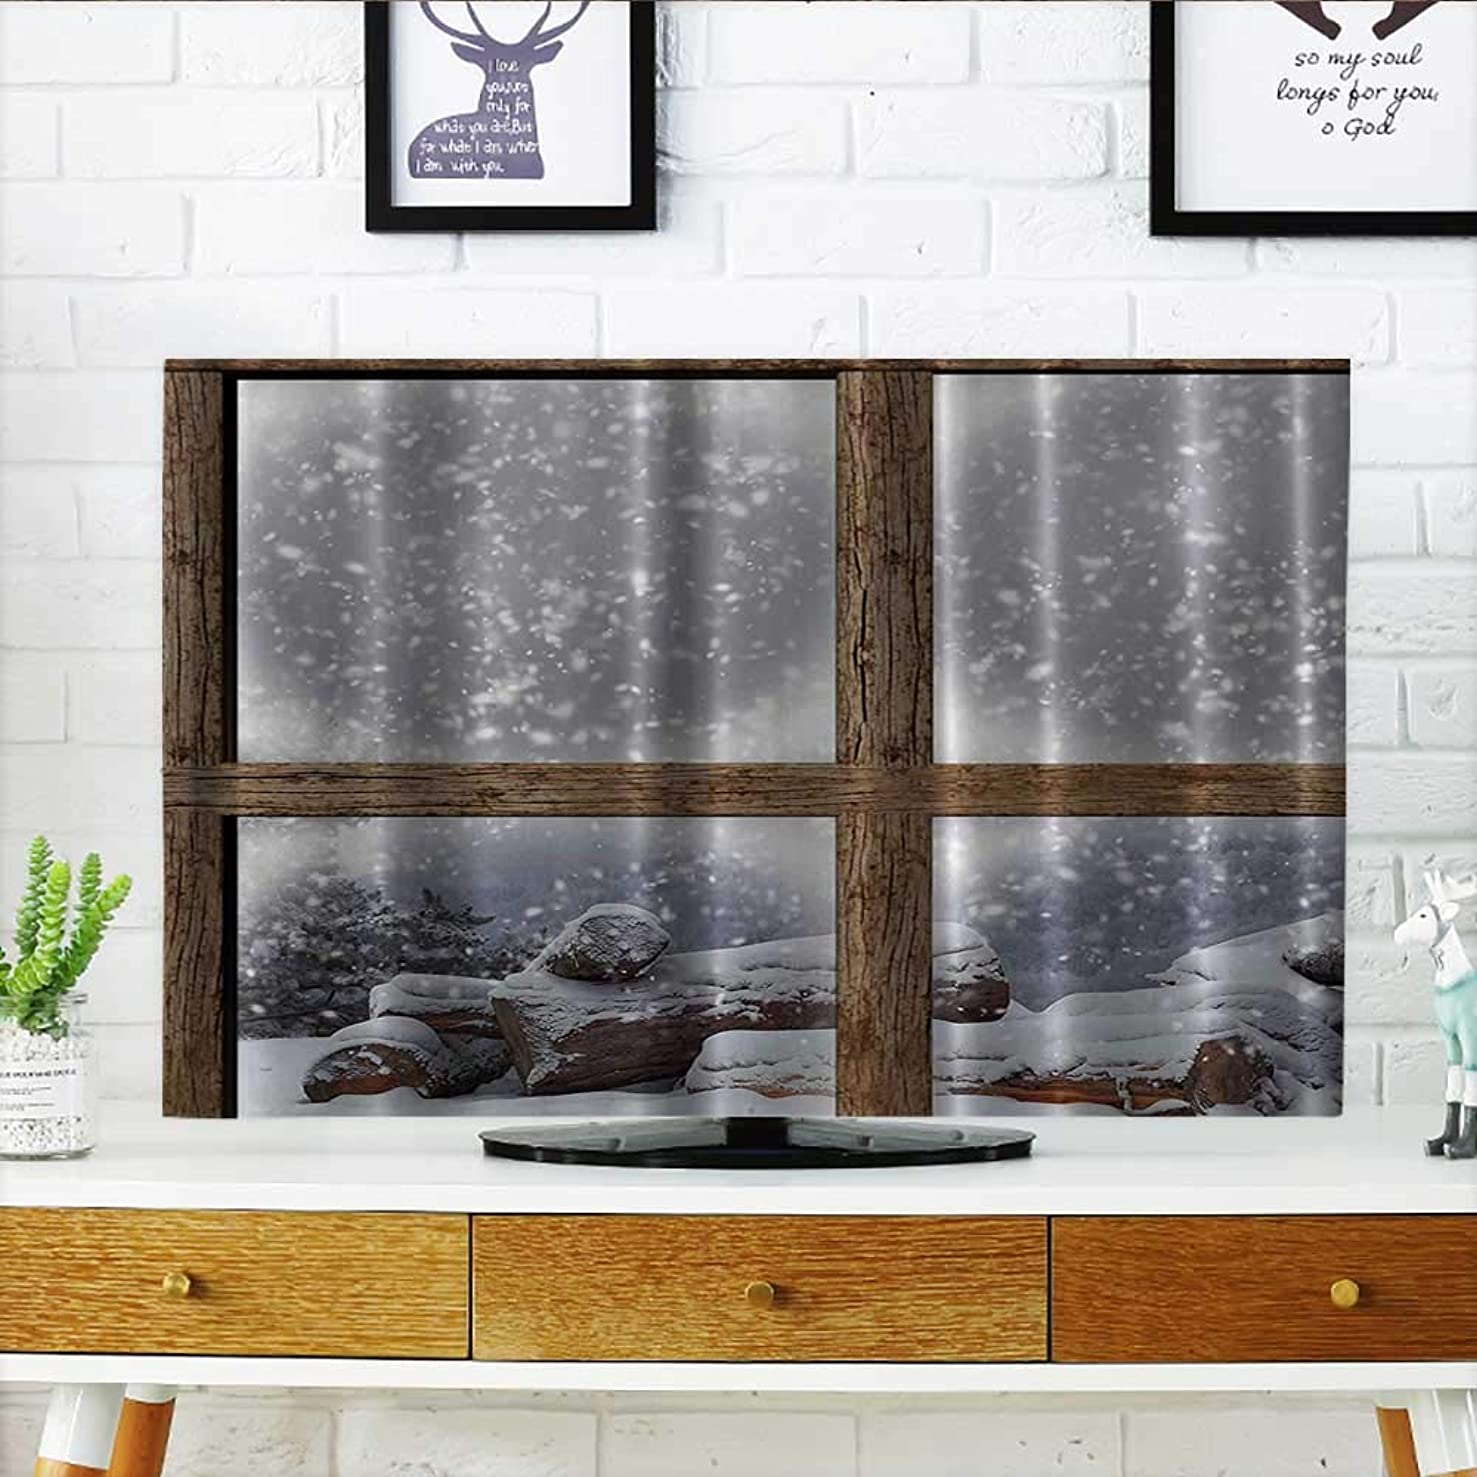 Dust Resistant Television Protector Snowy Woodsy Wooden Frame Window for Lake and Mountain House Home tv dust Cover W19 x H30 INCH/TV 32